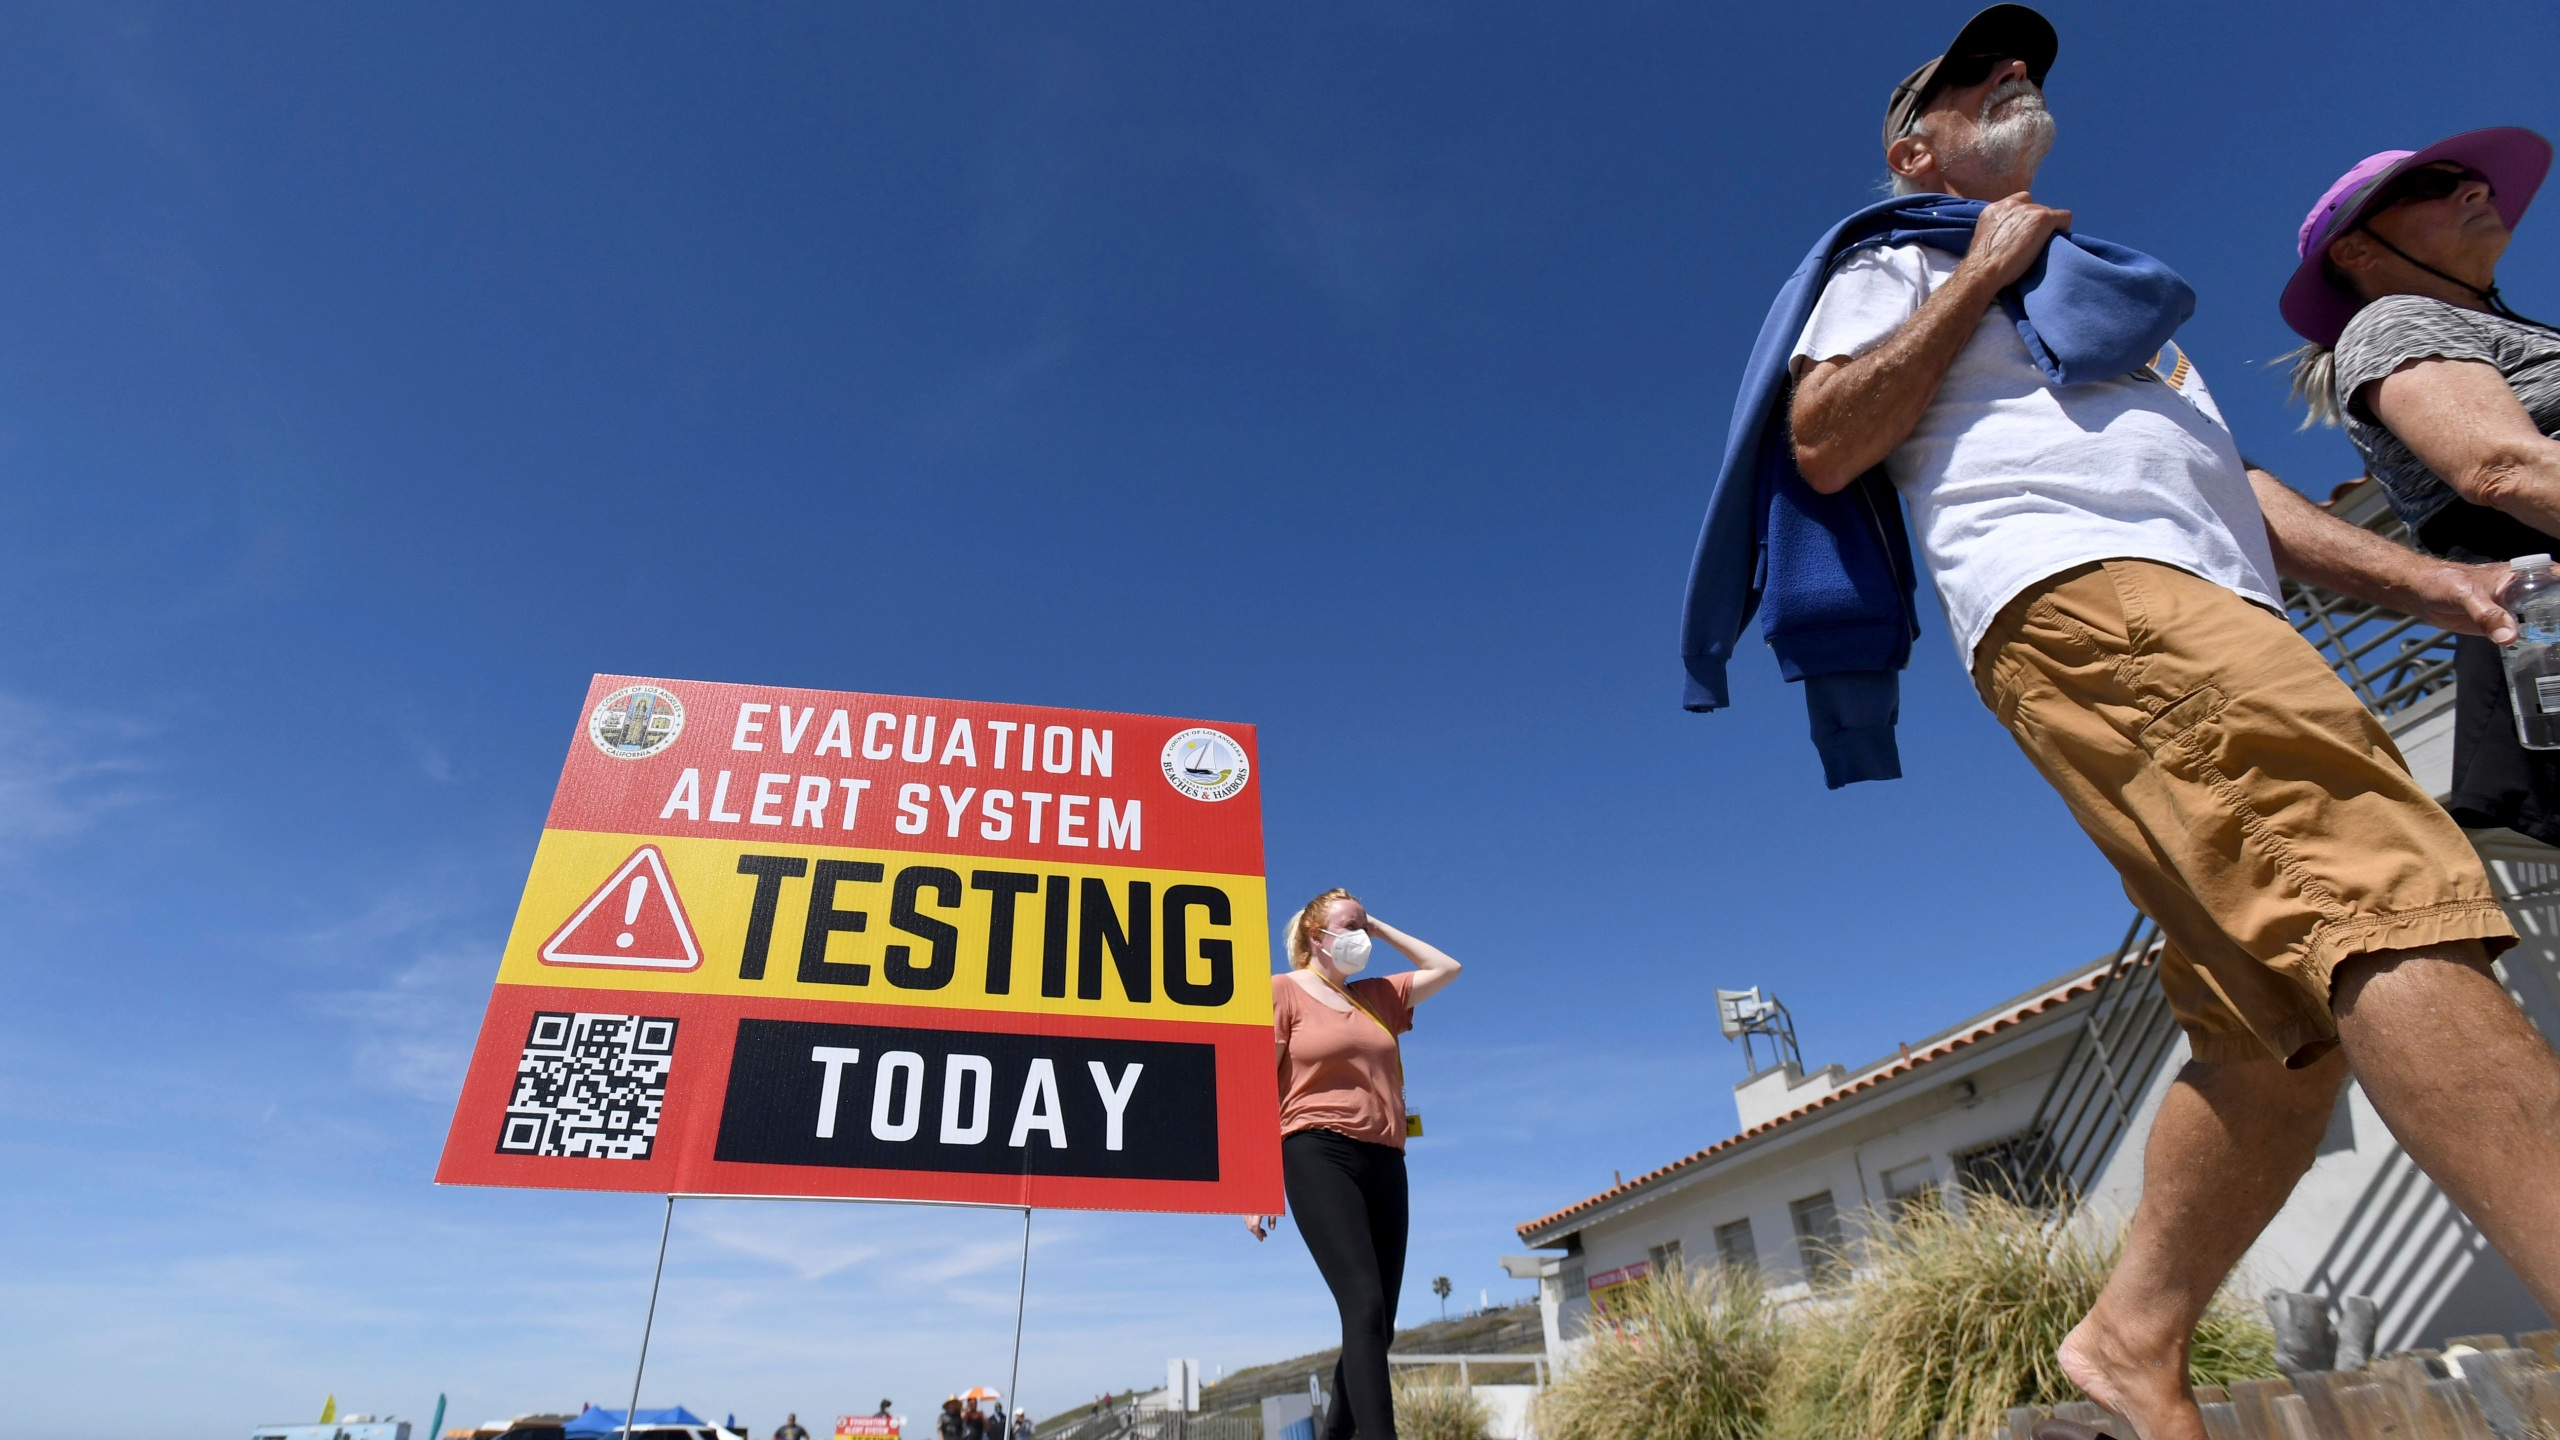 A testing sign for a new beach evacuation alert system is displayed Torrance Beach in Torrance, Calif., on Thursday, April 29, 2021. (Brittany Murray/The Orange County Register via AP)